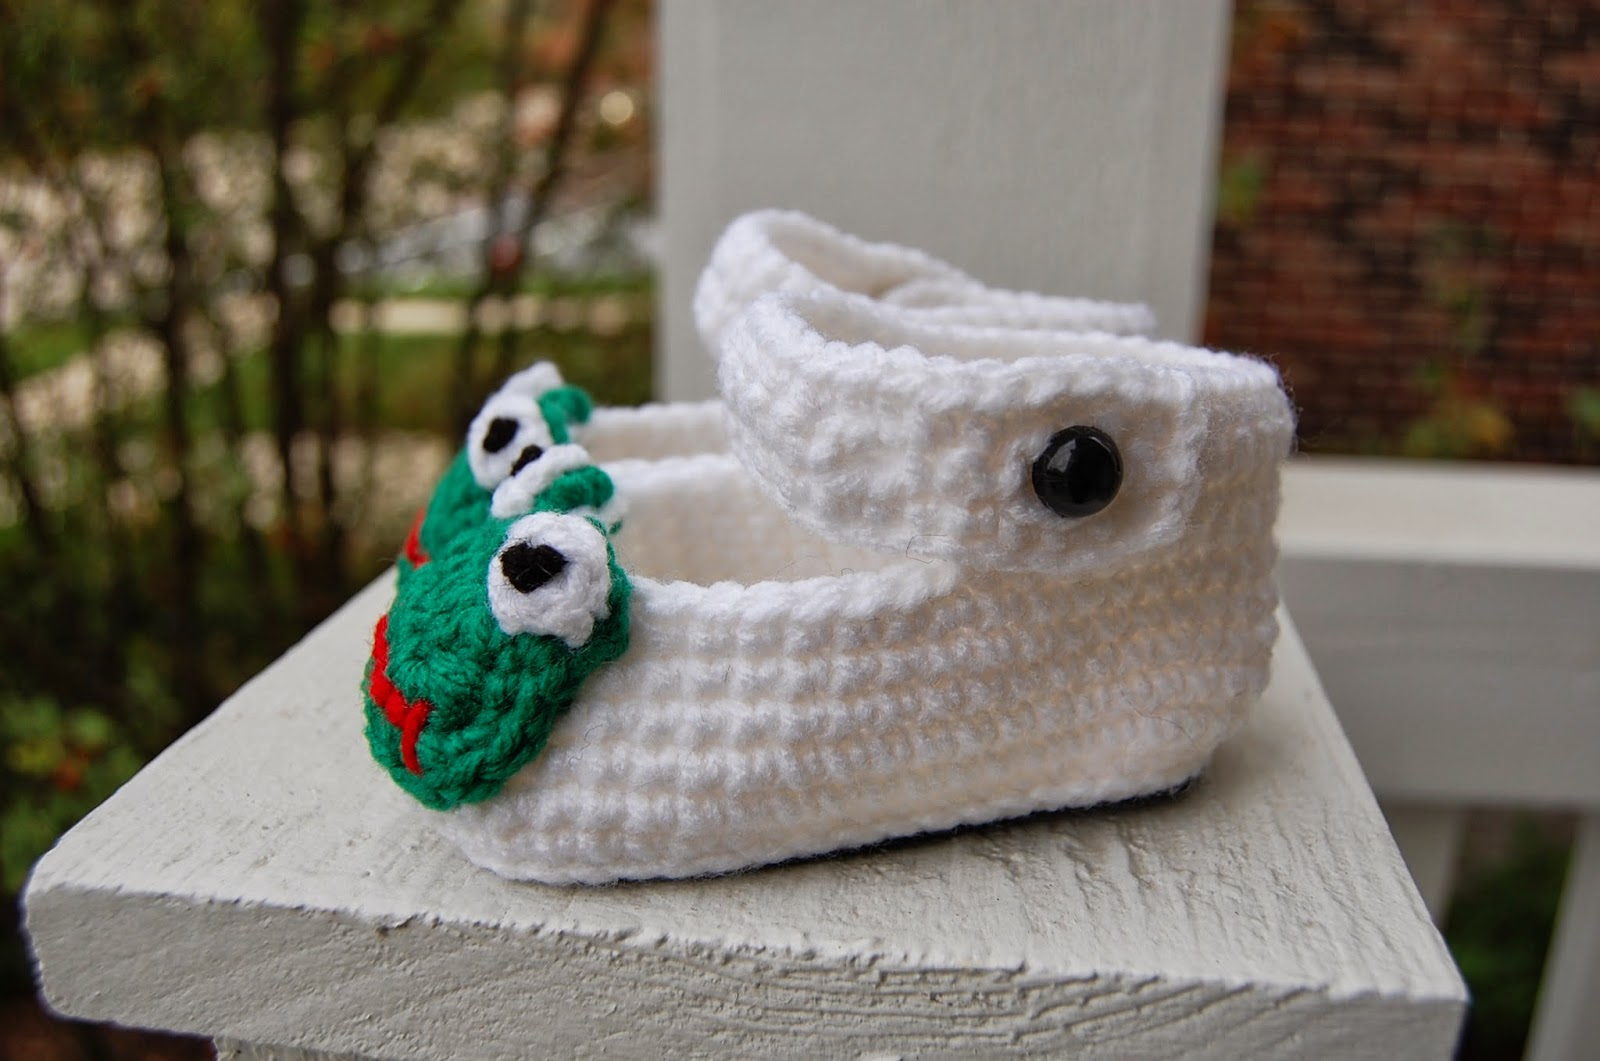 Roonie ranching frog mary jane baby shoes 9 month old size a hand bankloansurffo Image collections